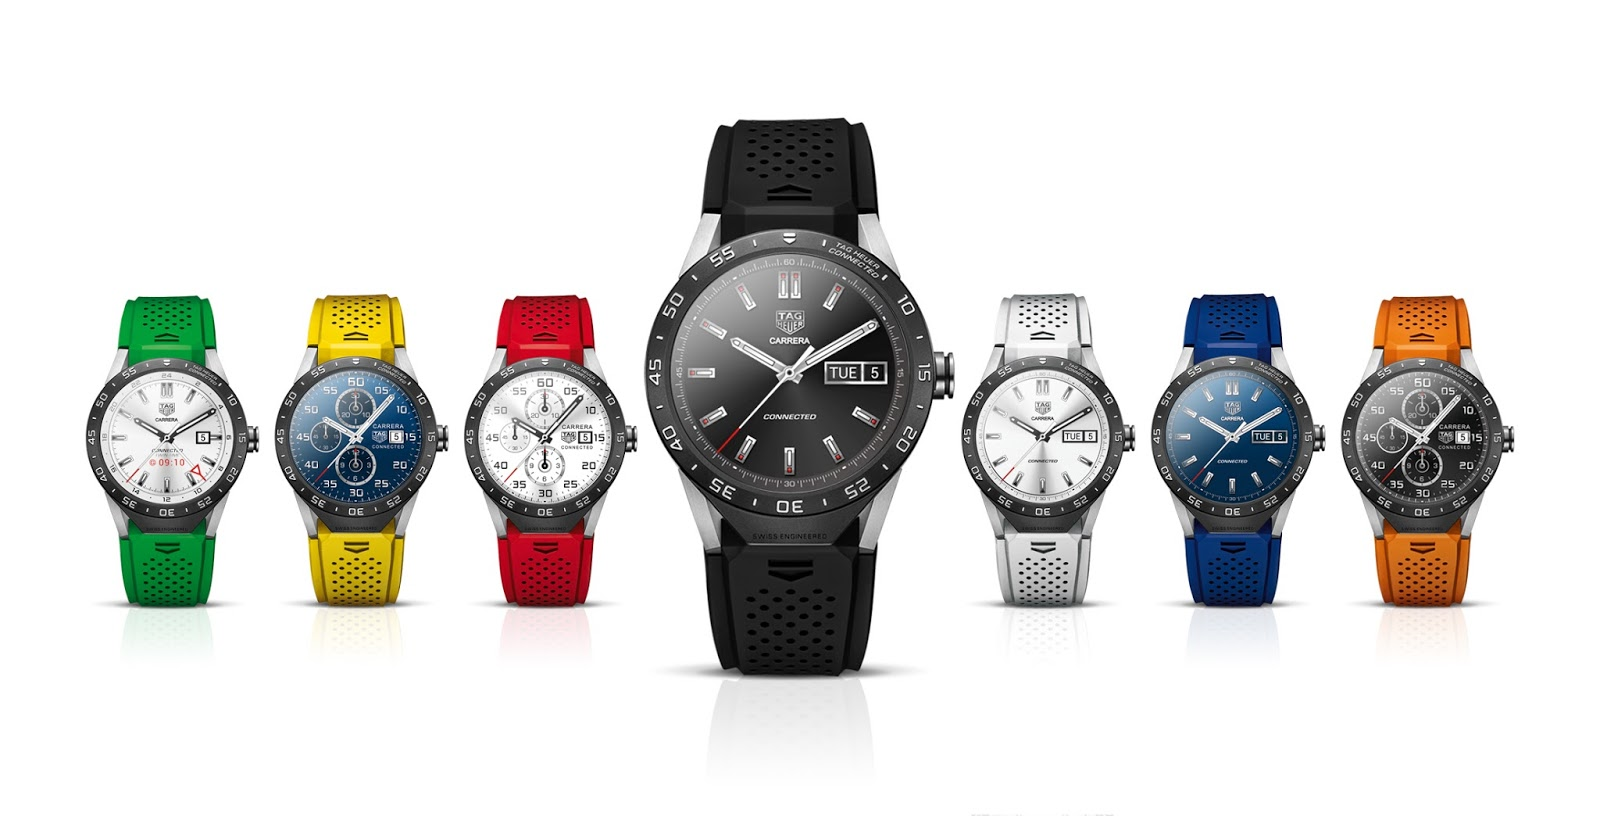 Android connected deutschland preis Tag heuer wear